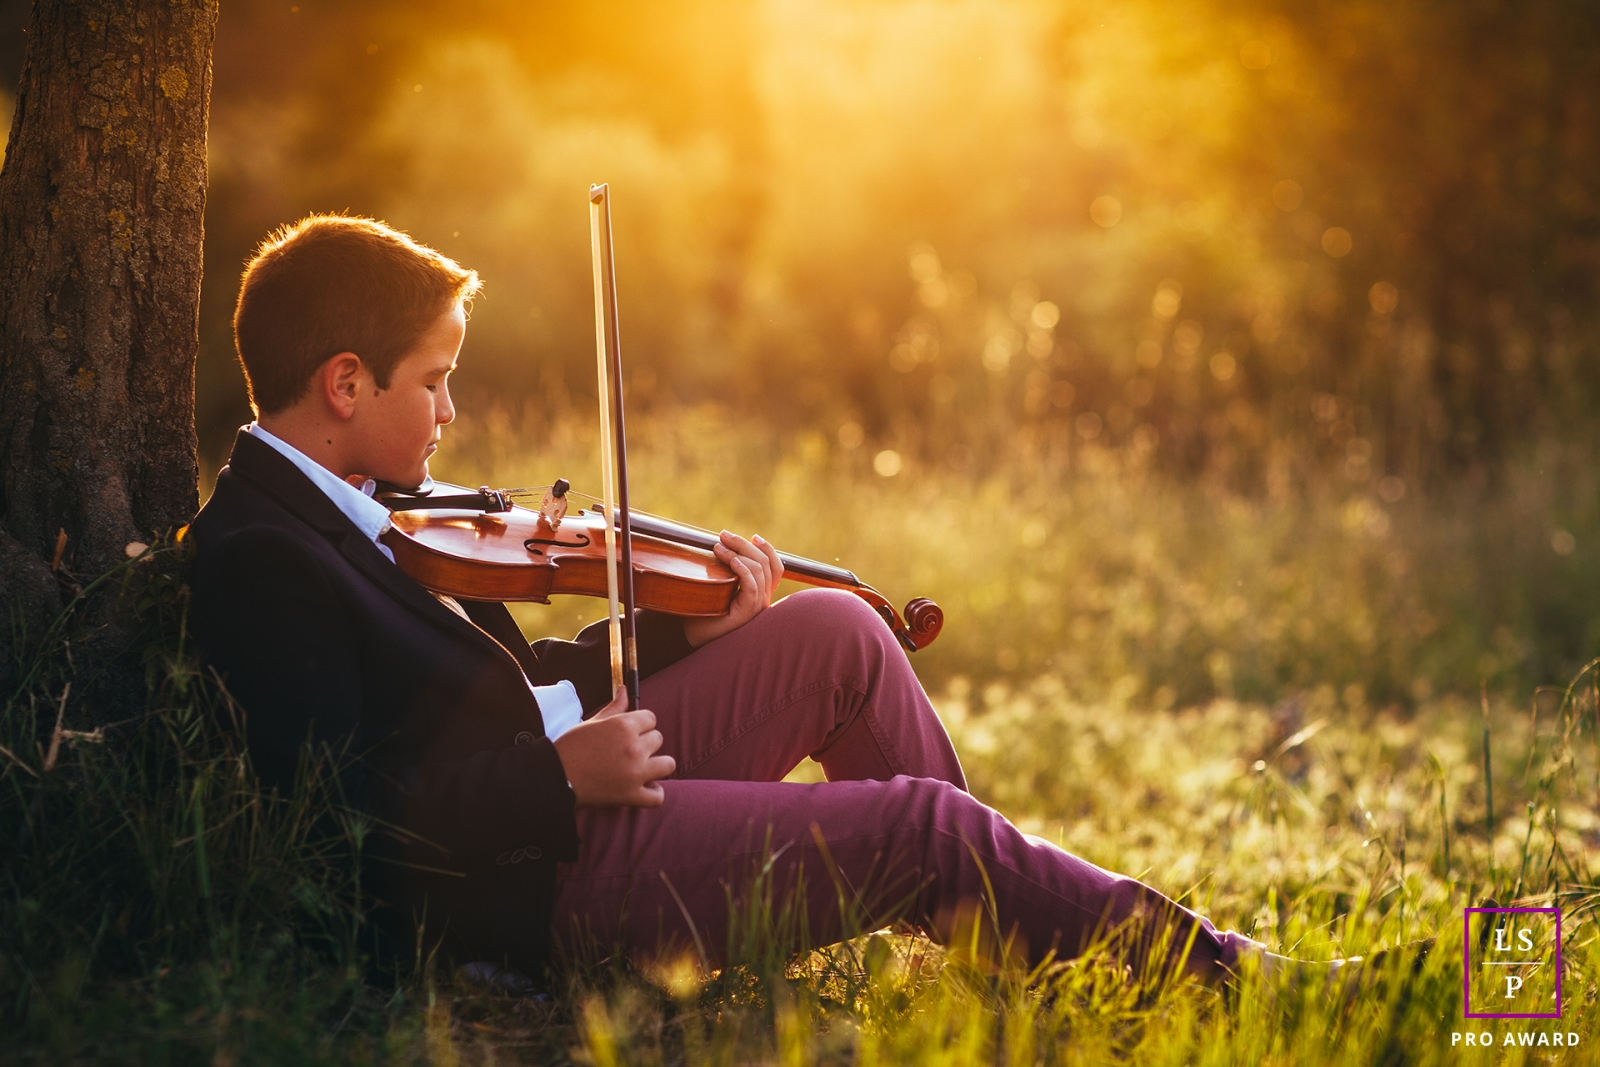 Boy Portraits in Barcelona Spain | Lifestyle Photography Session contains: young man, grass, tree, violin, sunlight